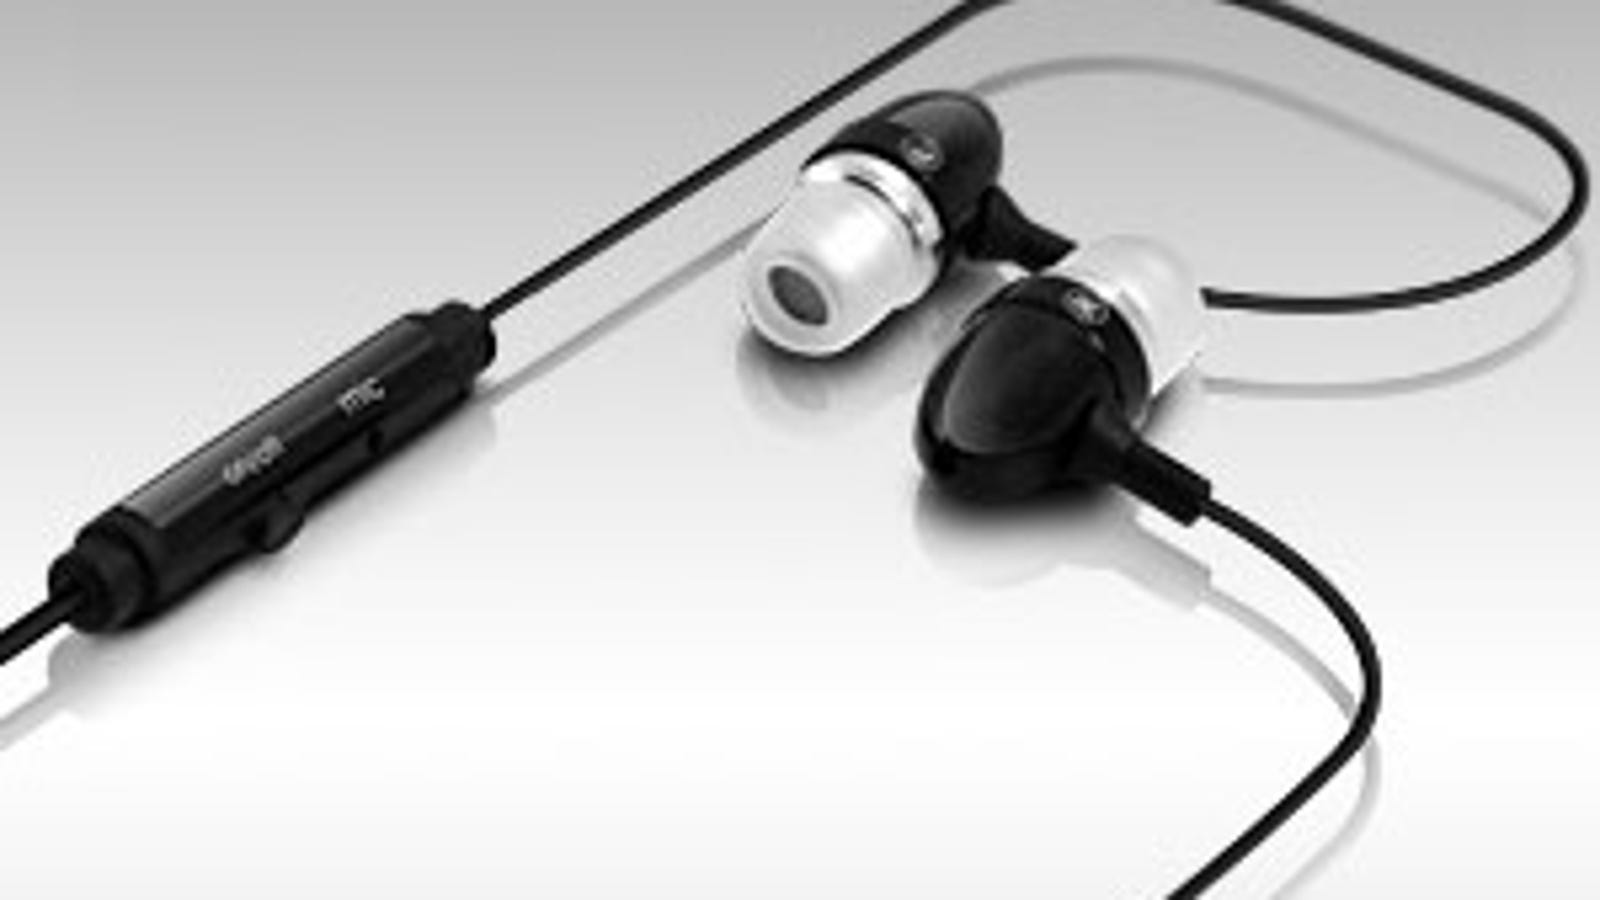 cute earbuds for women - RadTech ProCable iPhone Headphones Are a Cheap Alternative